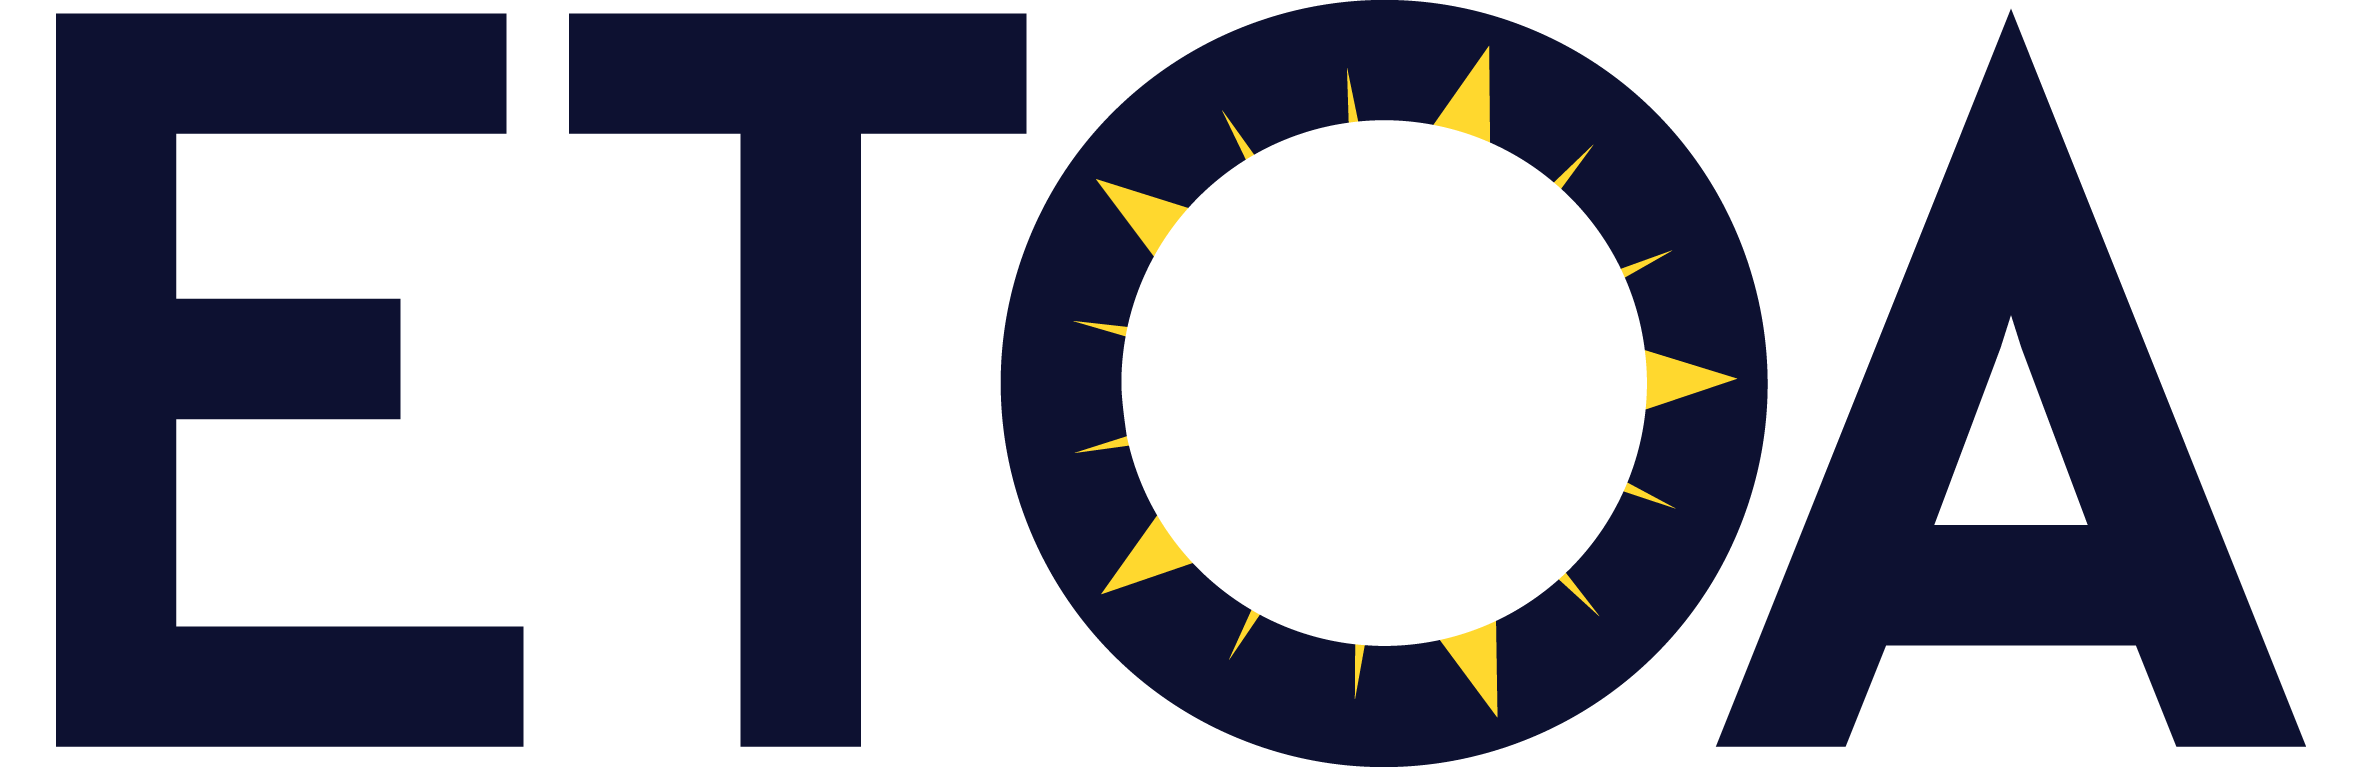 ETOA logo transparent background